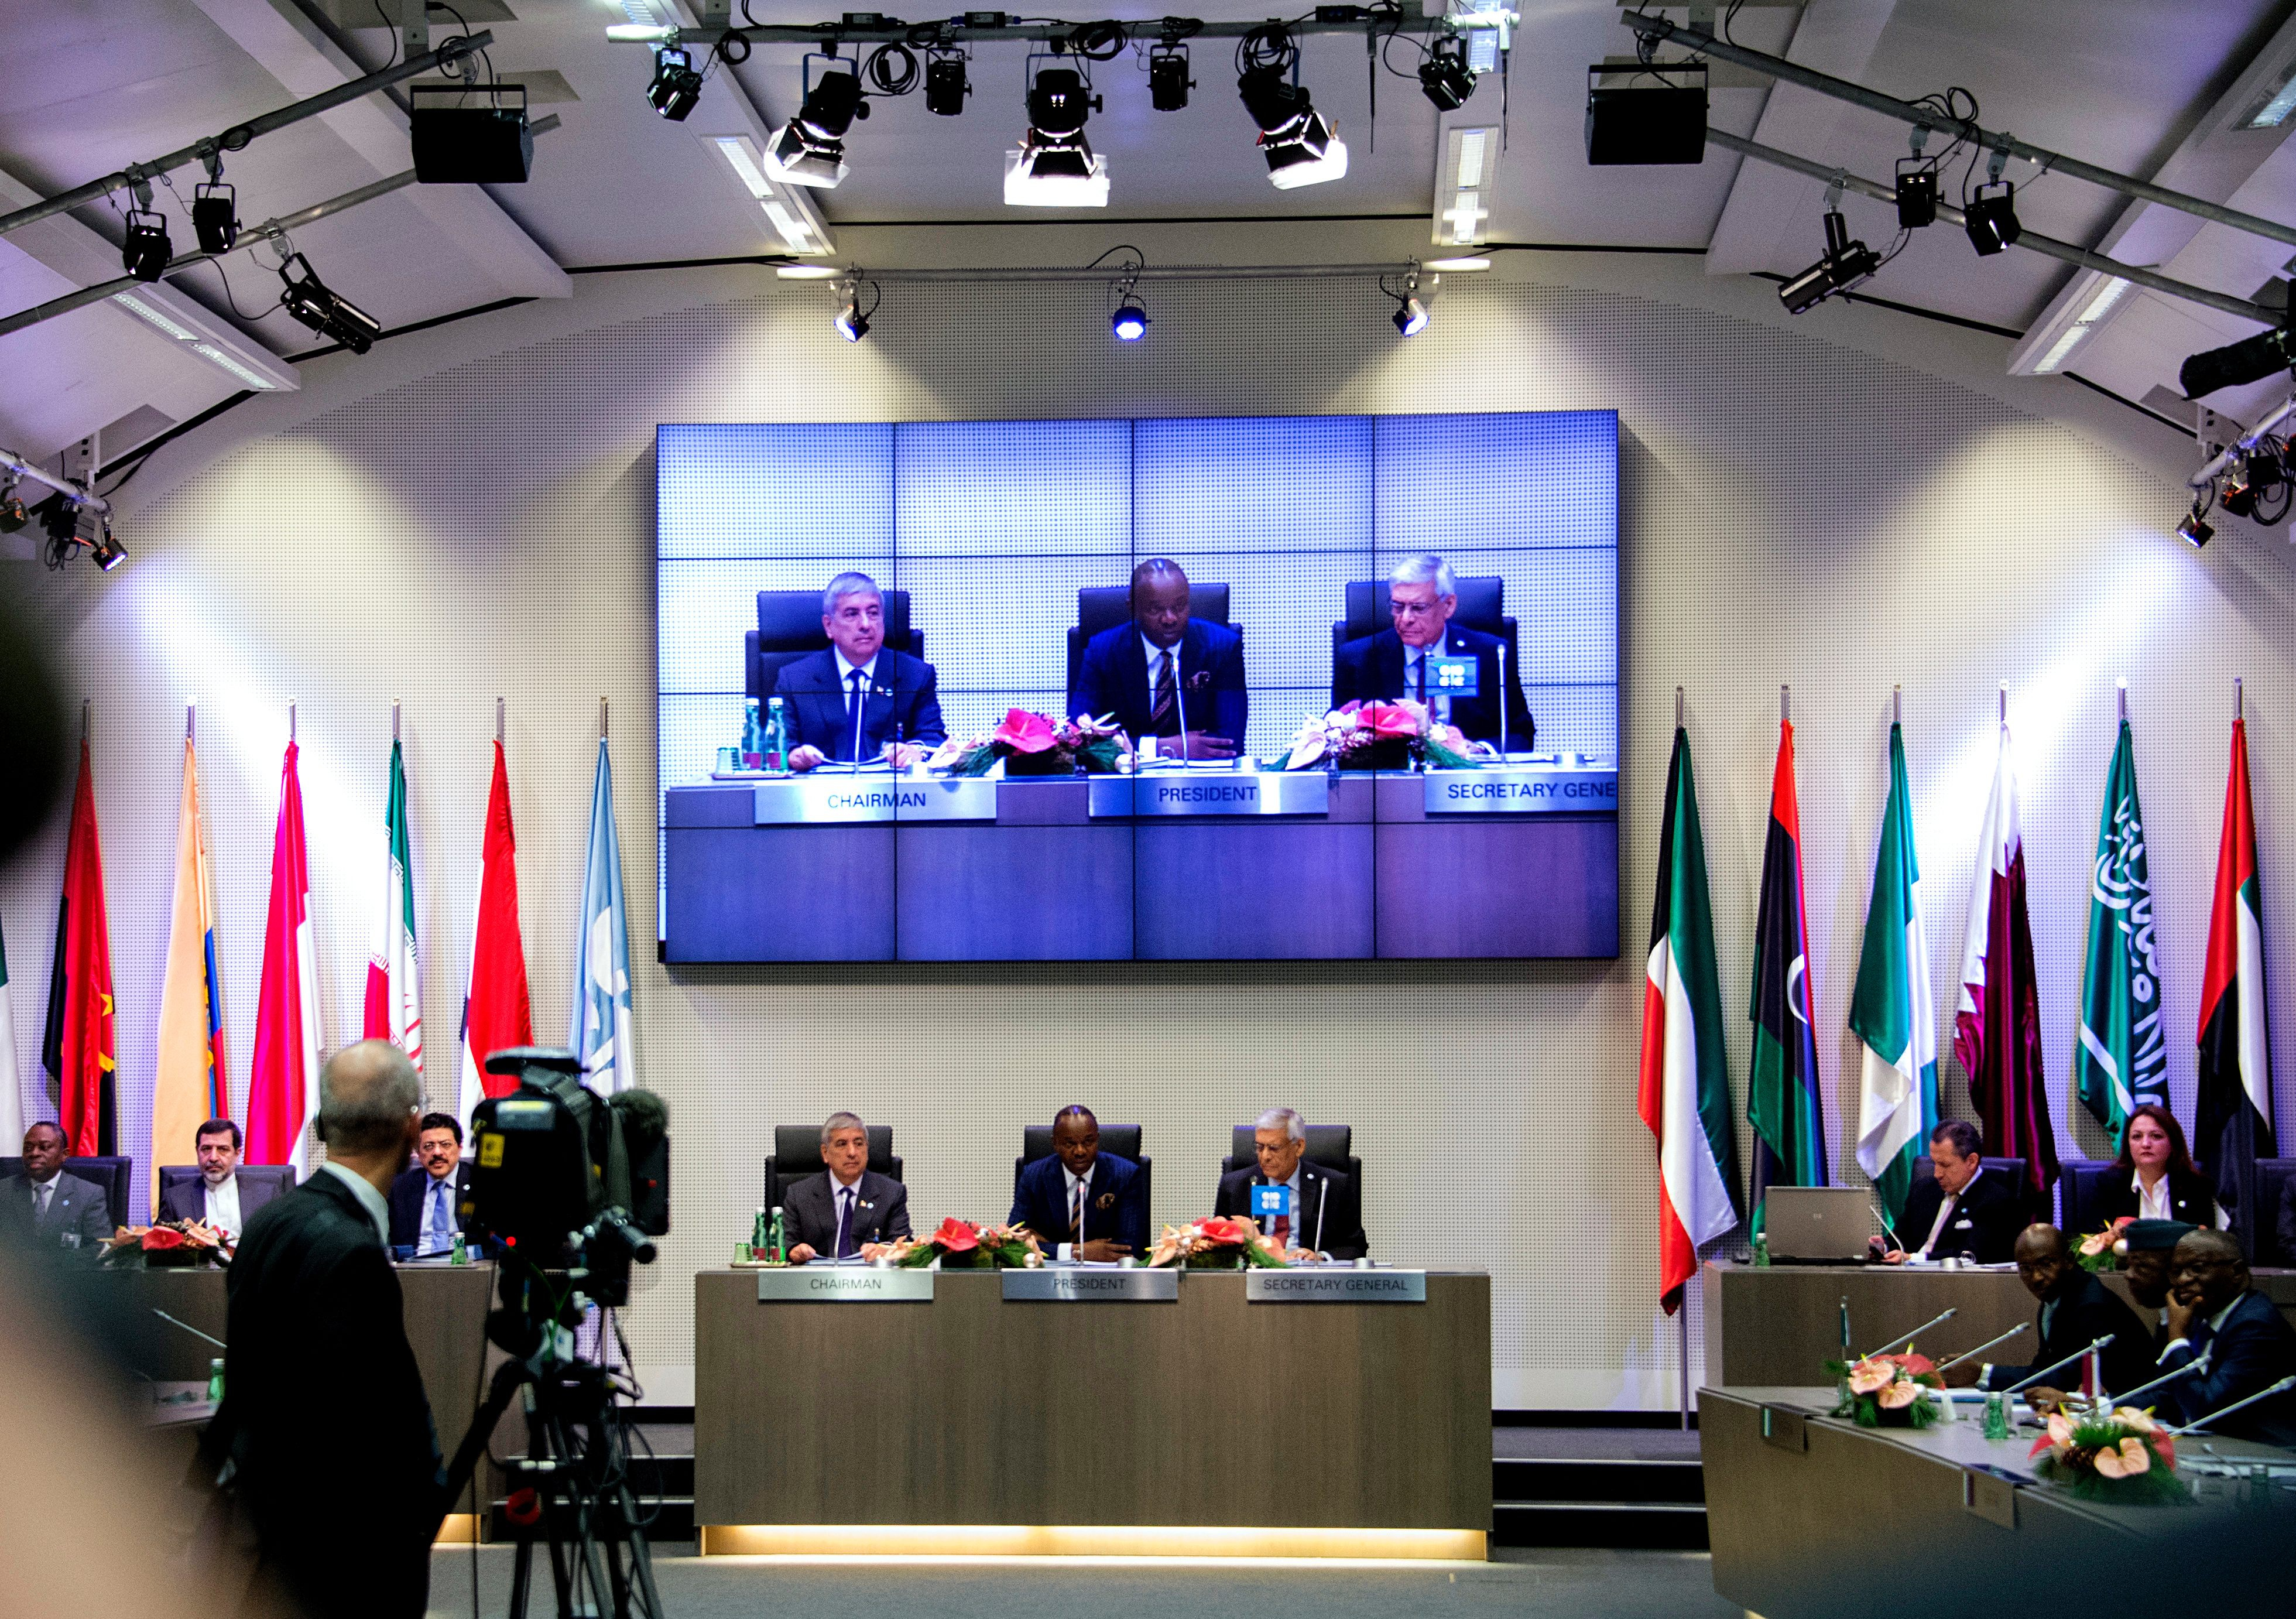 The 168th conference of the Organization of the Petroleum Exporting Countries (OPEC) in Vienna on Dec. 4, 2015.